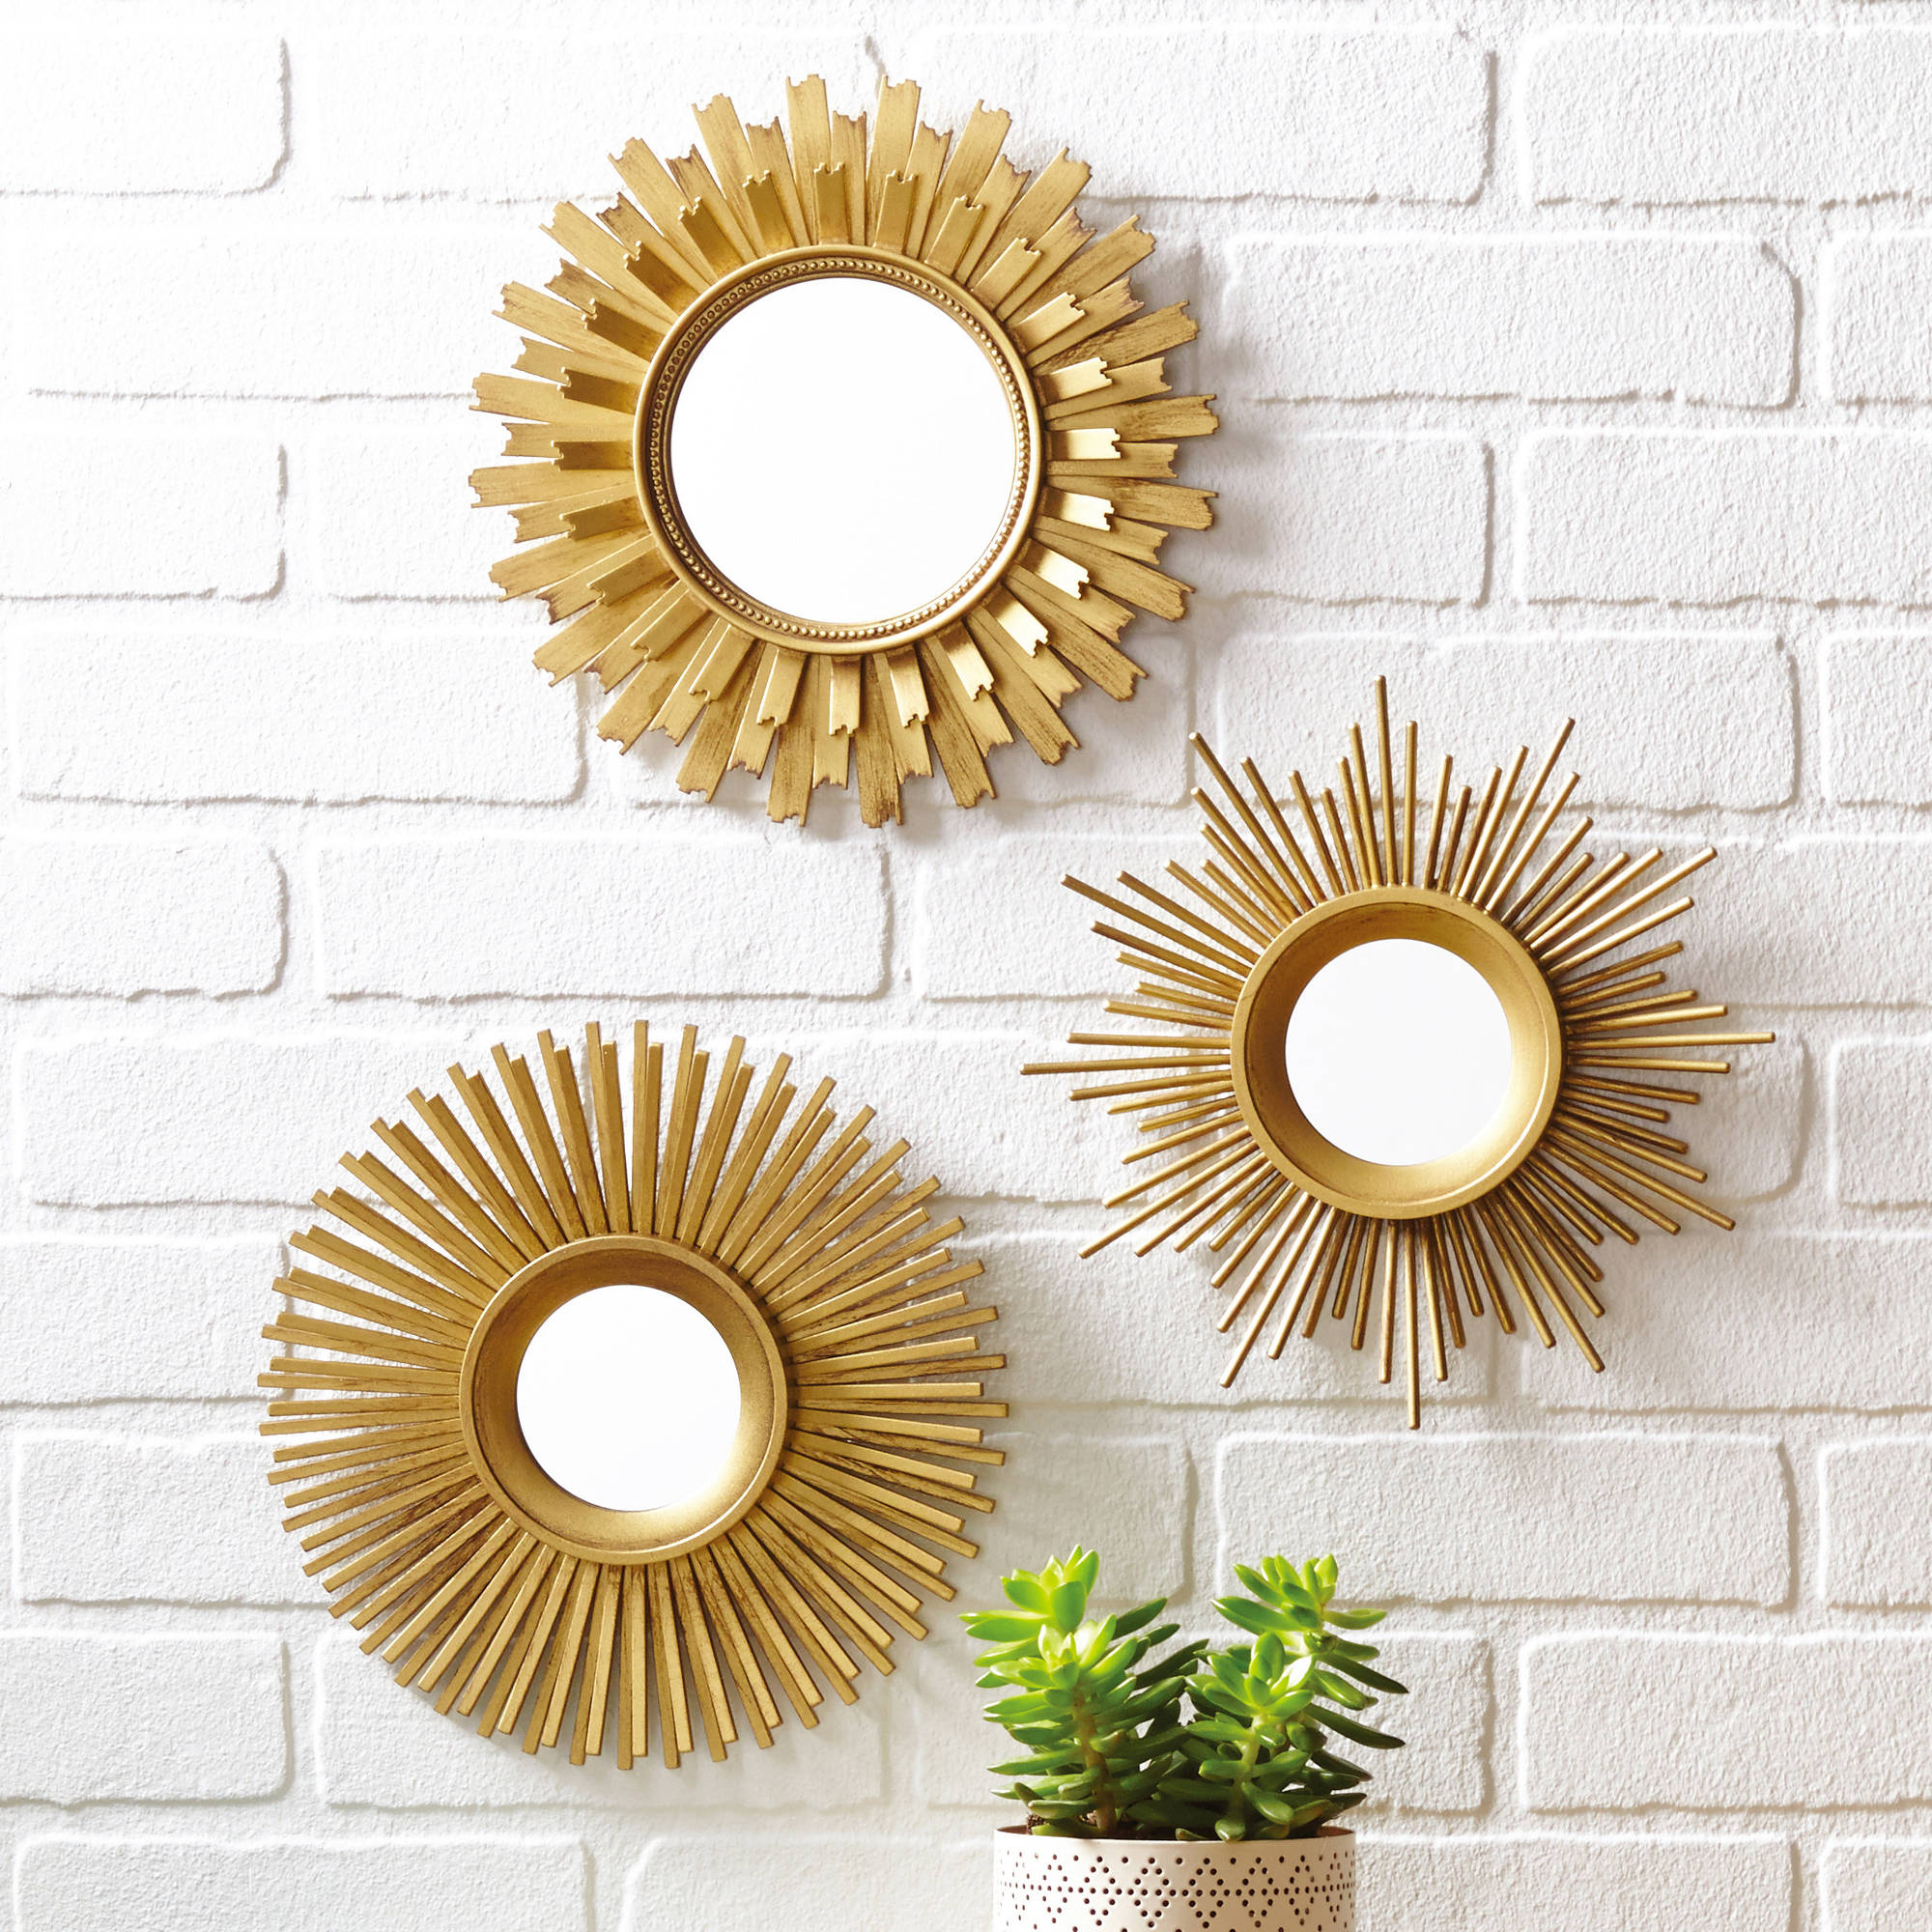 Popular Decorative Wall Mirror Sets Inside Wall Decor Top Mirror Sets Decorative Piece Large Over Couch (View 16 of 20)